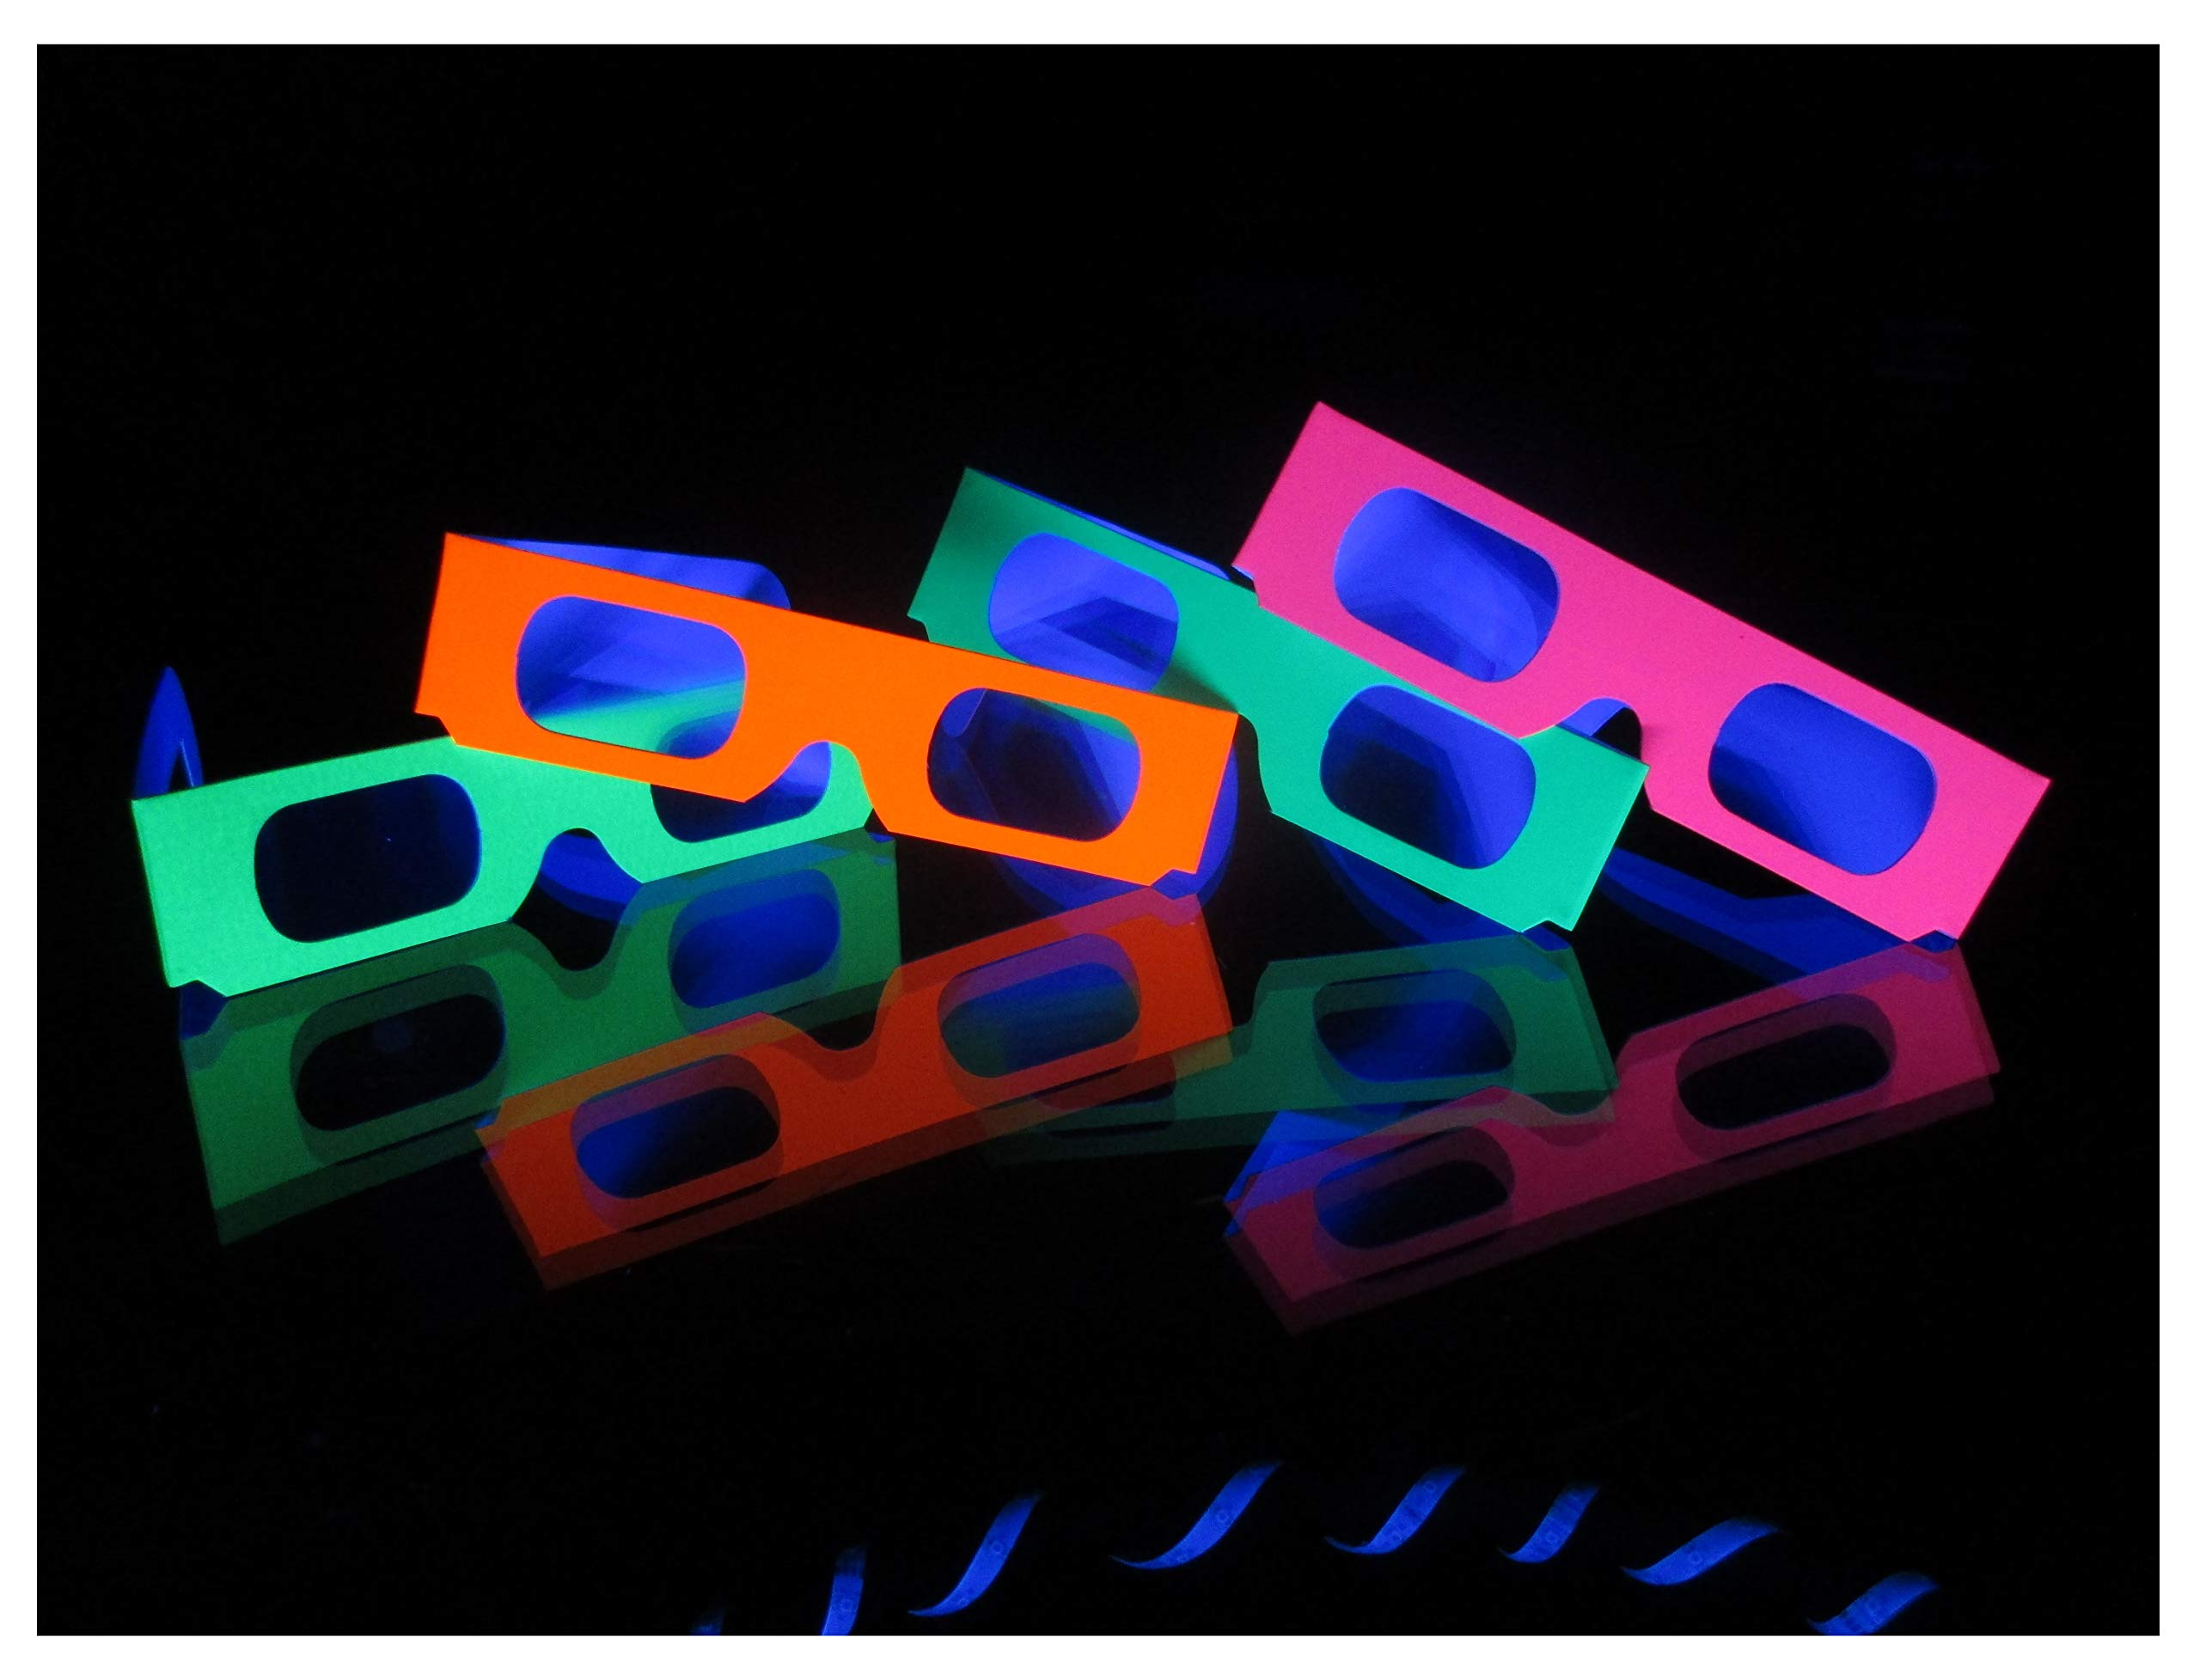 Rob's Super Happy Fun Store Fireworks Diffraction Grating Glasses (Glow Under Blacklight!) - 50 Glasses - Plus 1 Pair Rainbow Hearts Diffraction Glasses by Rob's Super Happy Fun Store